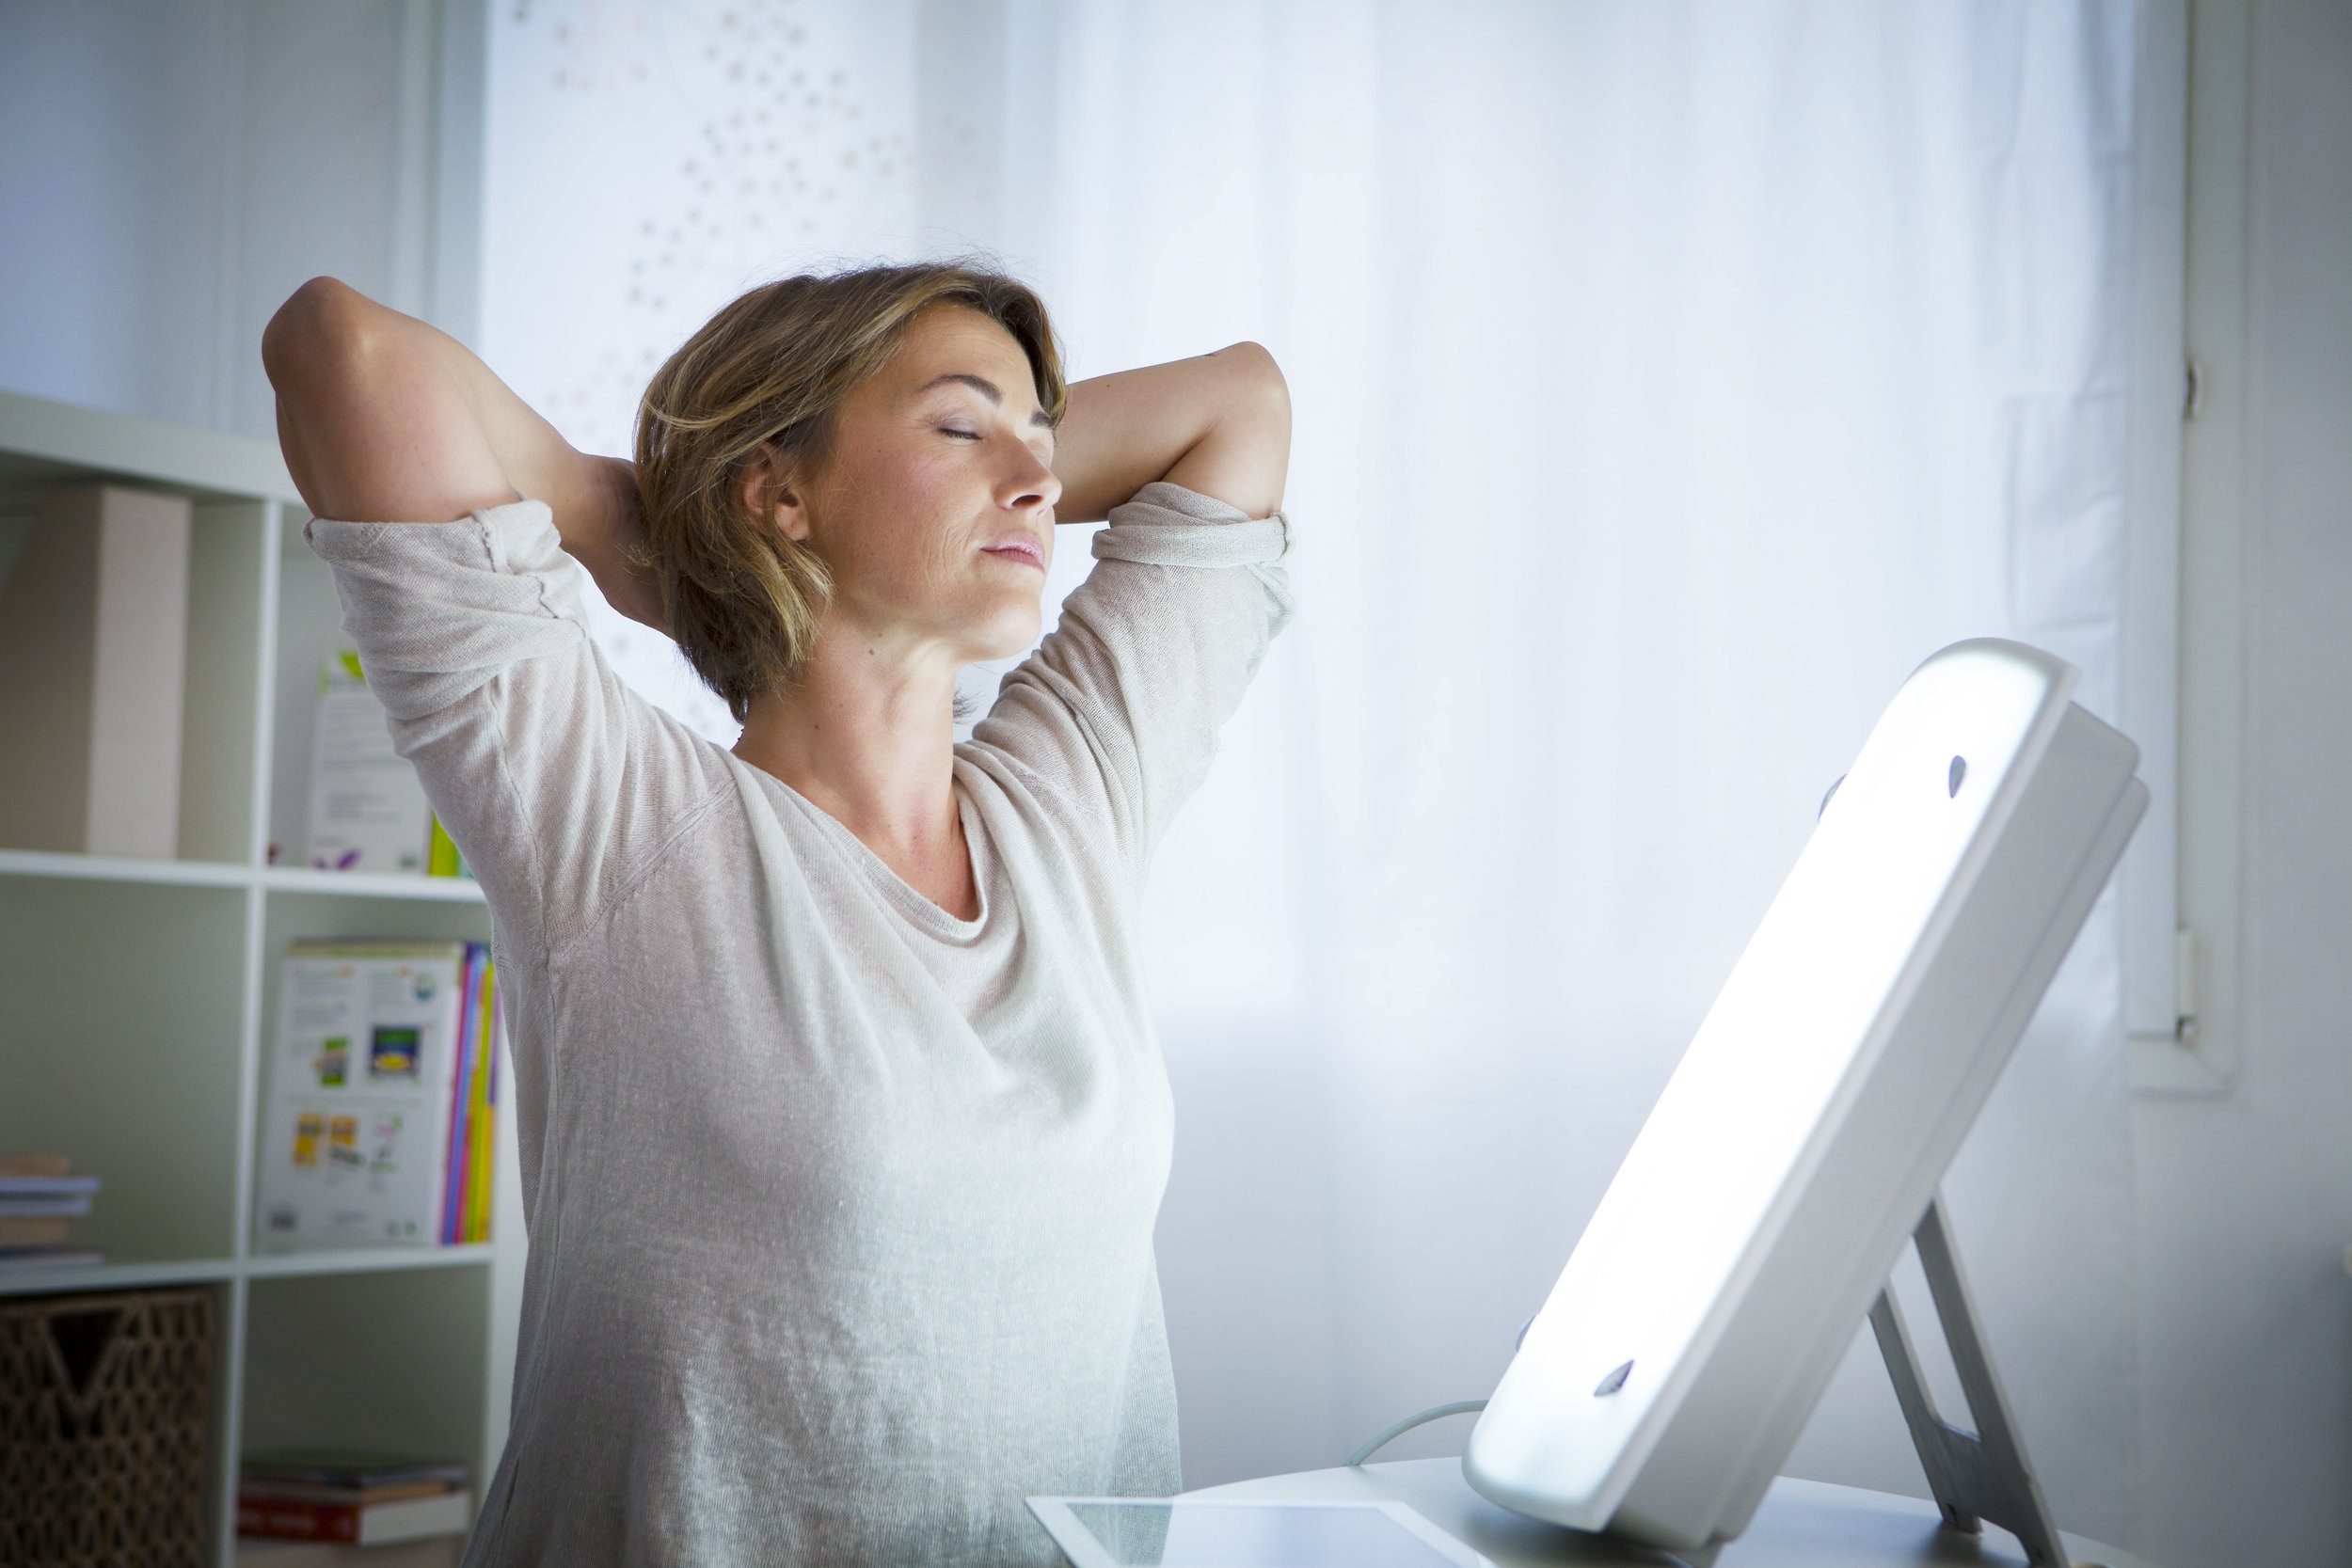 How Light Therapy Lamps Can Help Ease Seasonal Affective Disorder